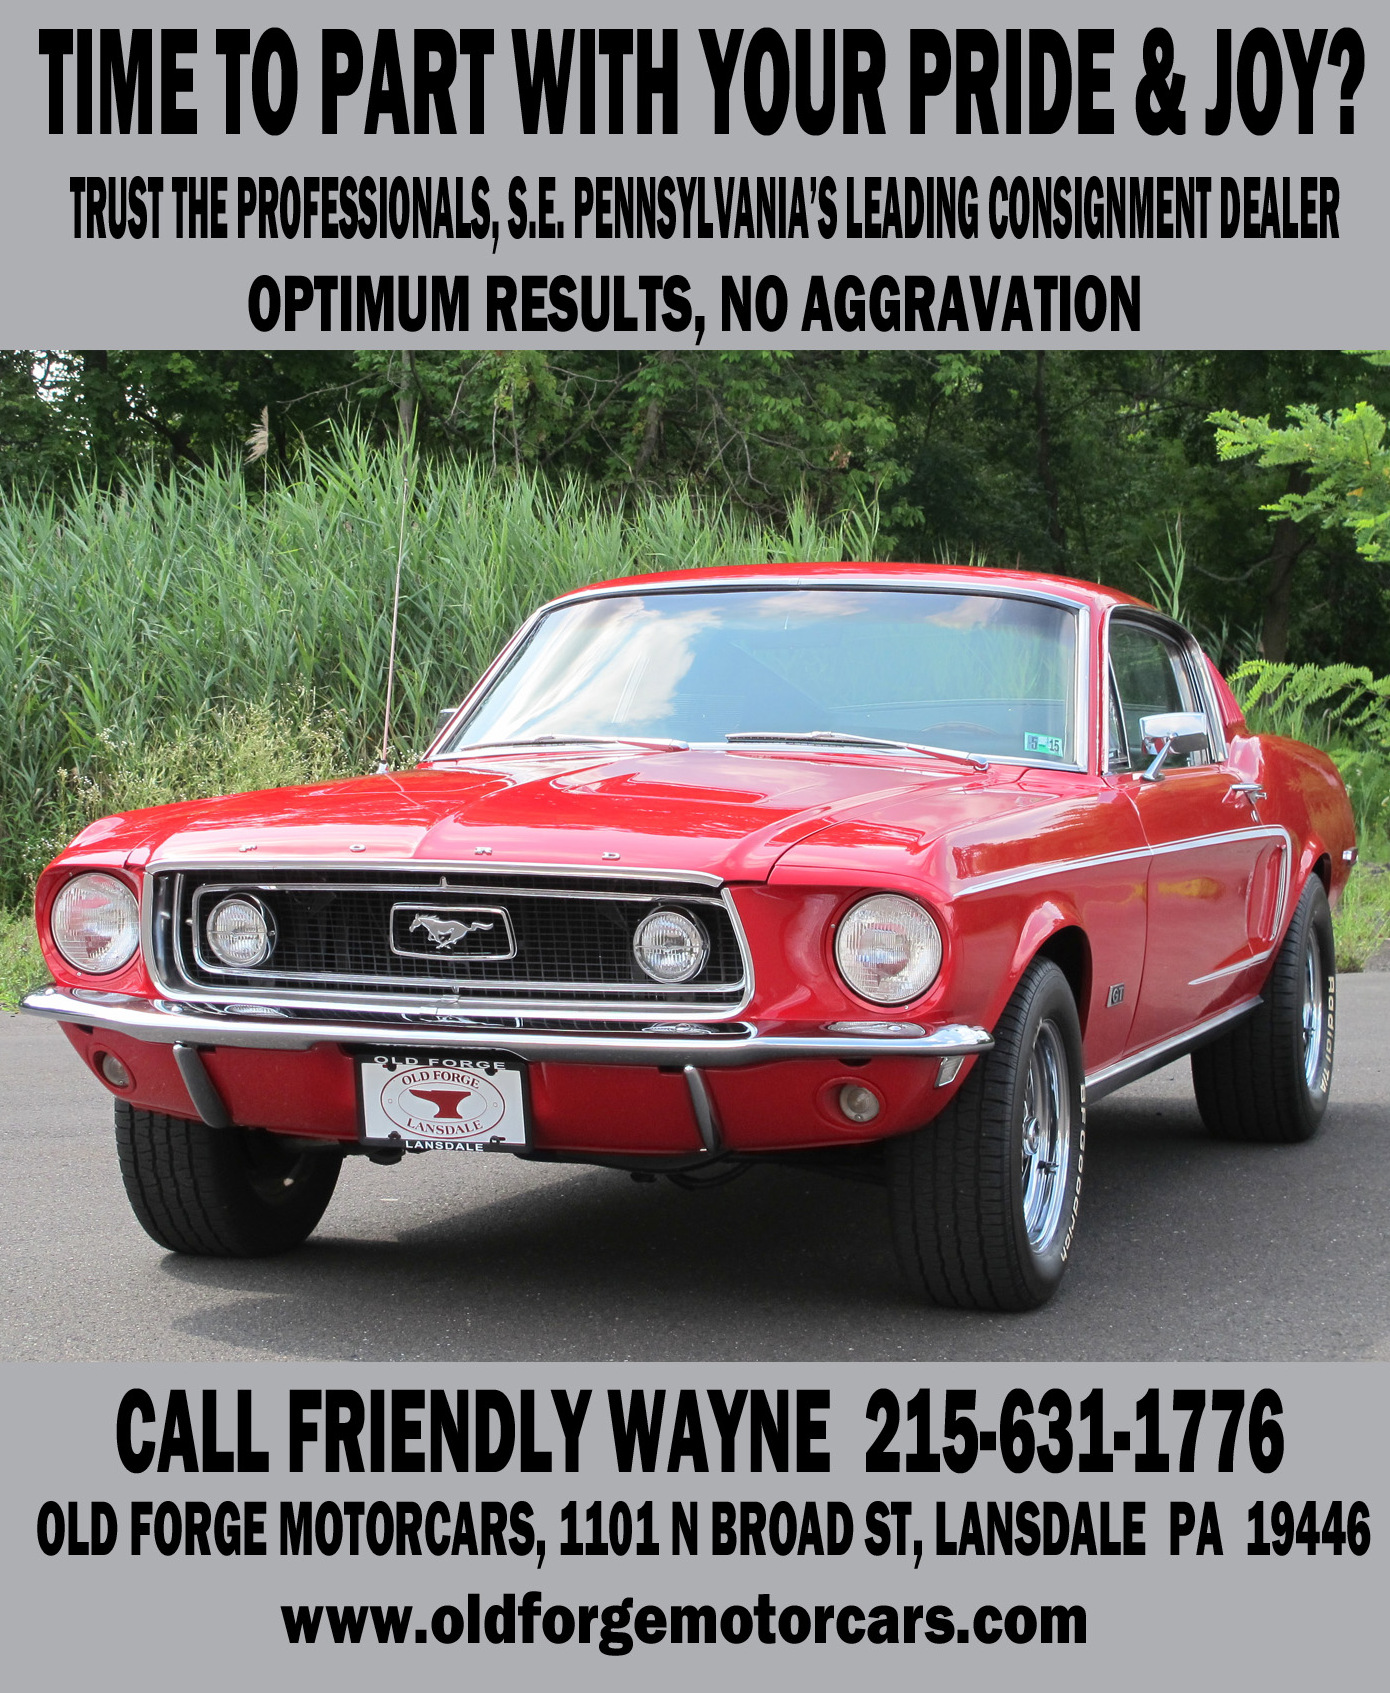 Consignment | OLD FORGE MOTORCARS INC